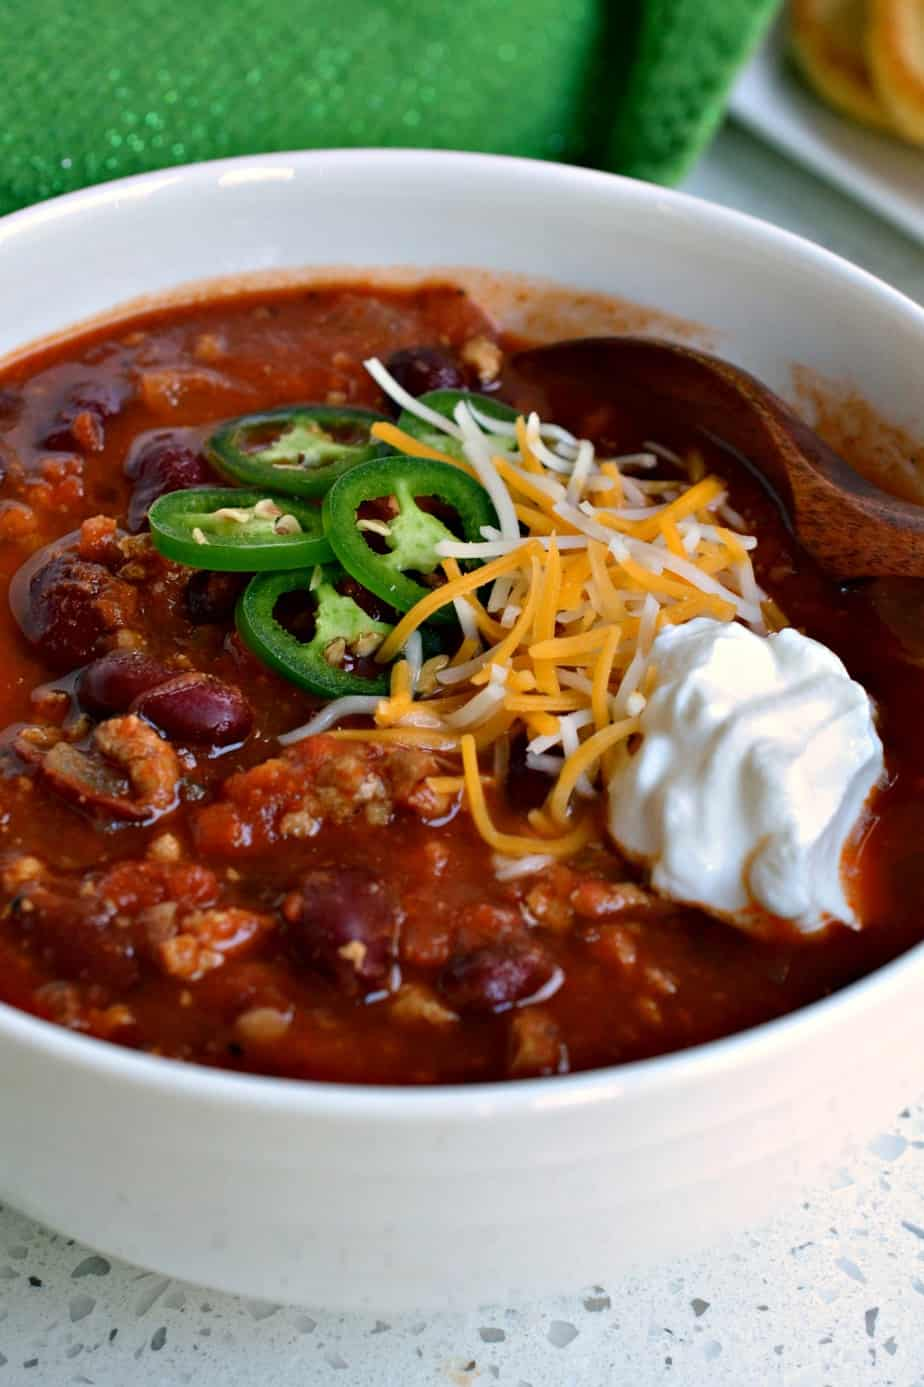 Make a big hot pot of Turkey Chili today and get ready to hear the accolades.